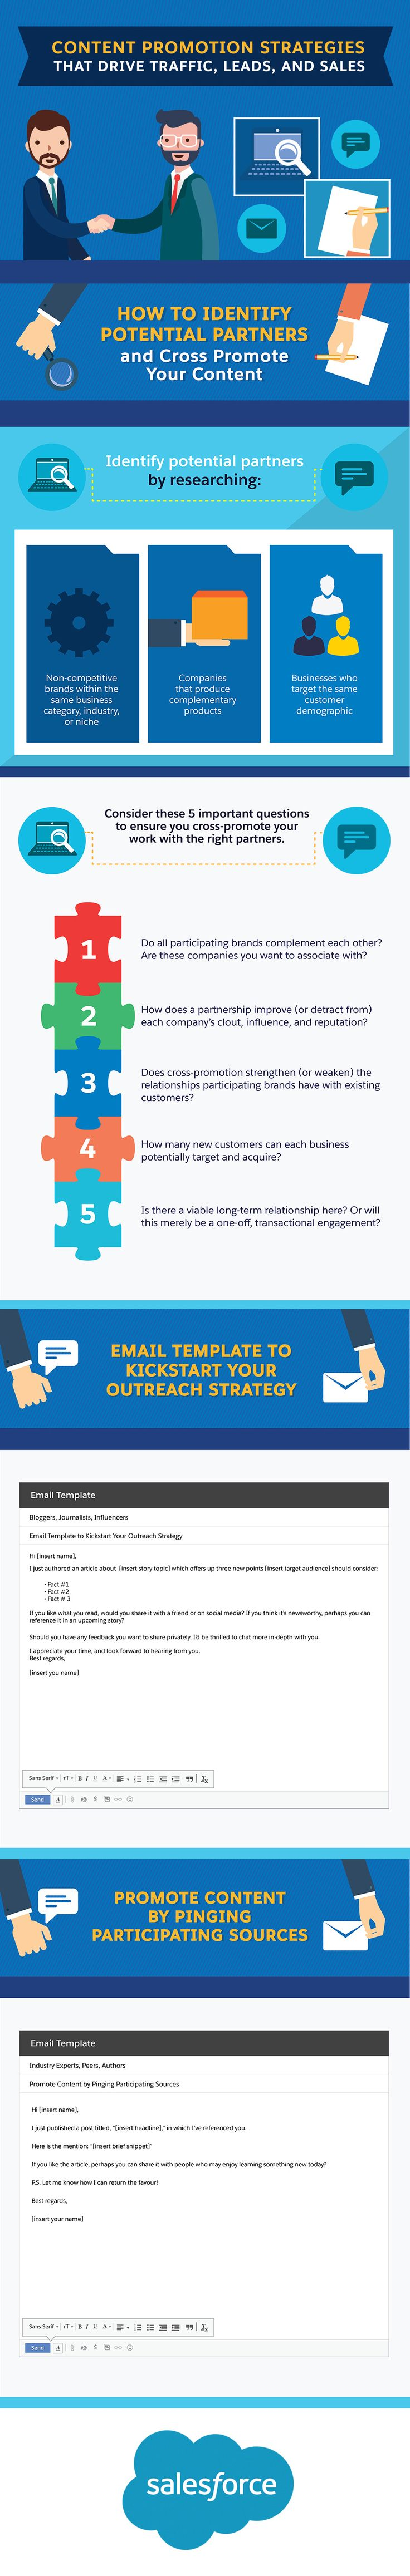 [Infographic] 7 Content Promotion Strategies That Drive Traffic, Leads, and Sales